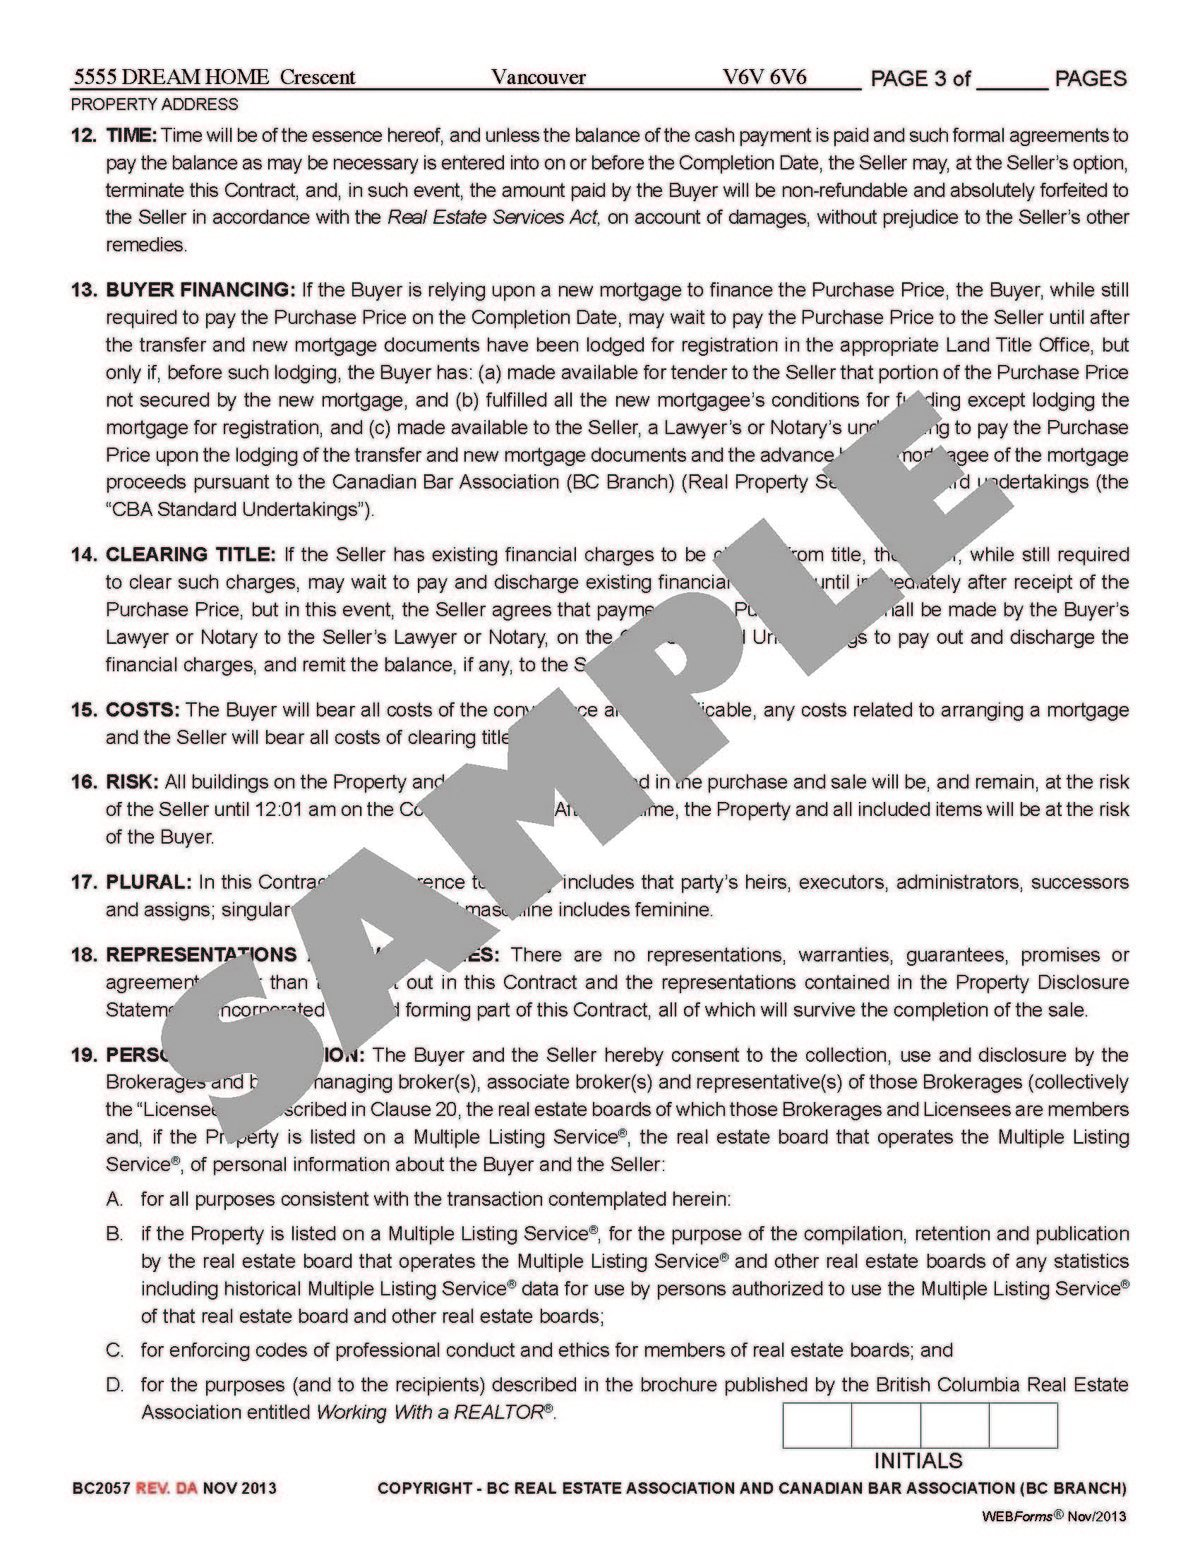 MLS-contract_of_purchase_and_sale SAMPLE_Page_4.jpg